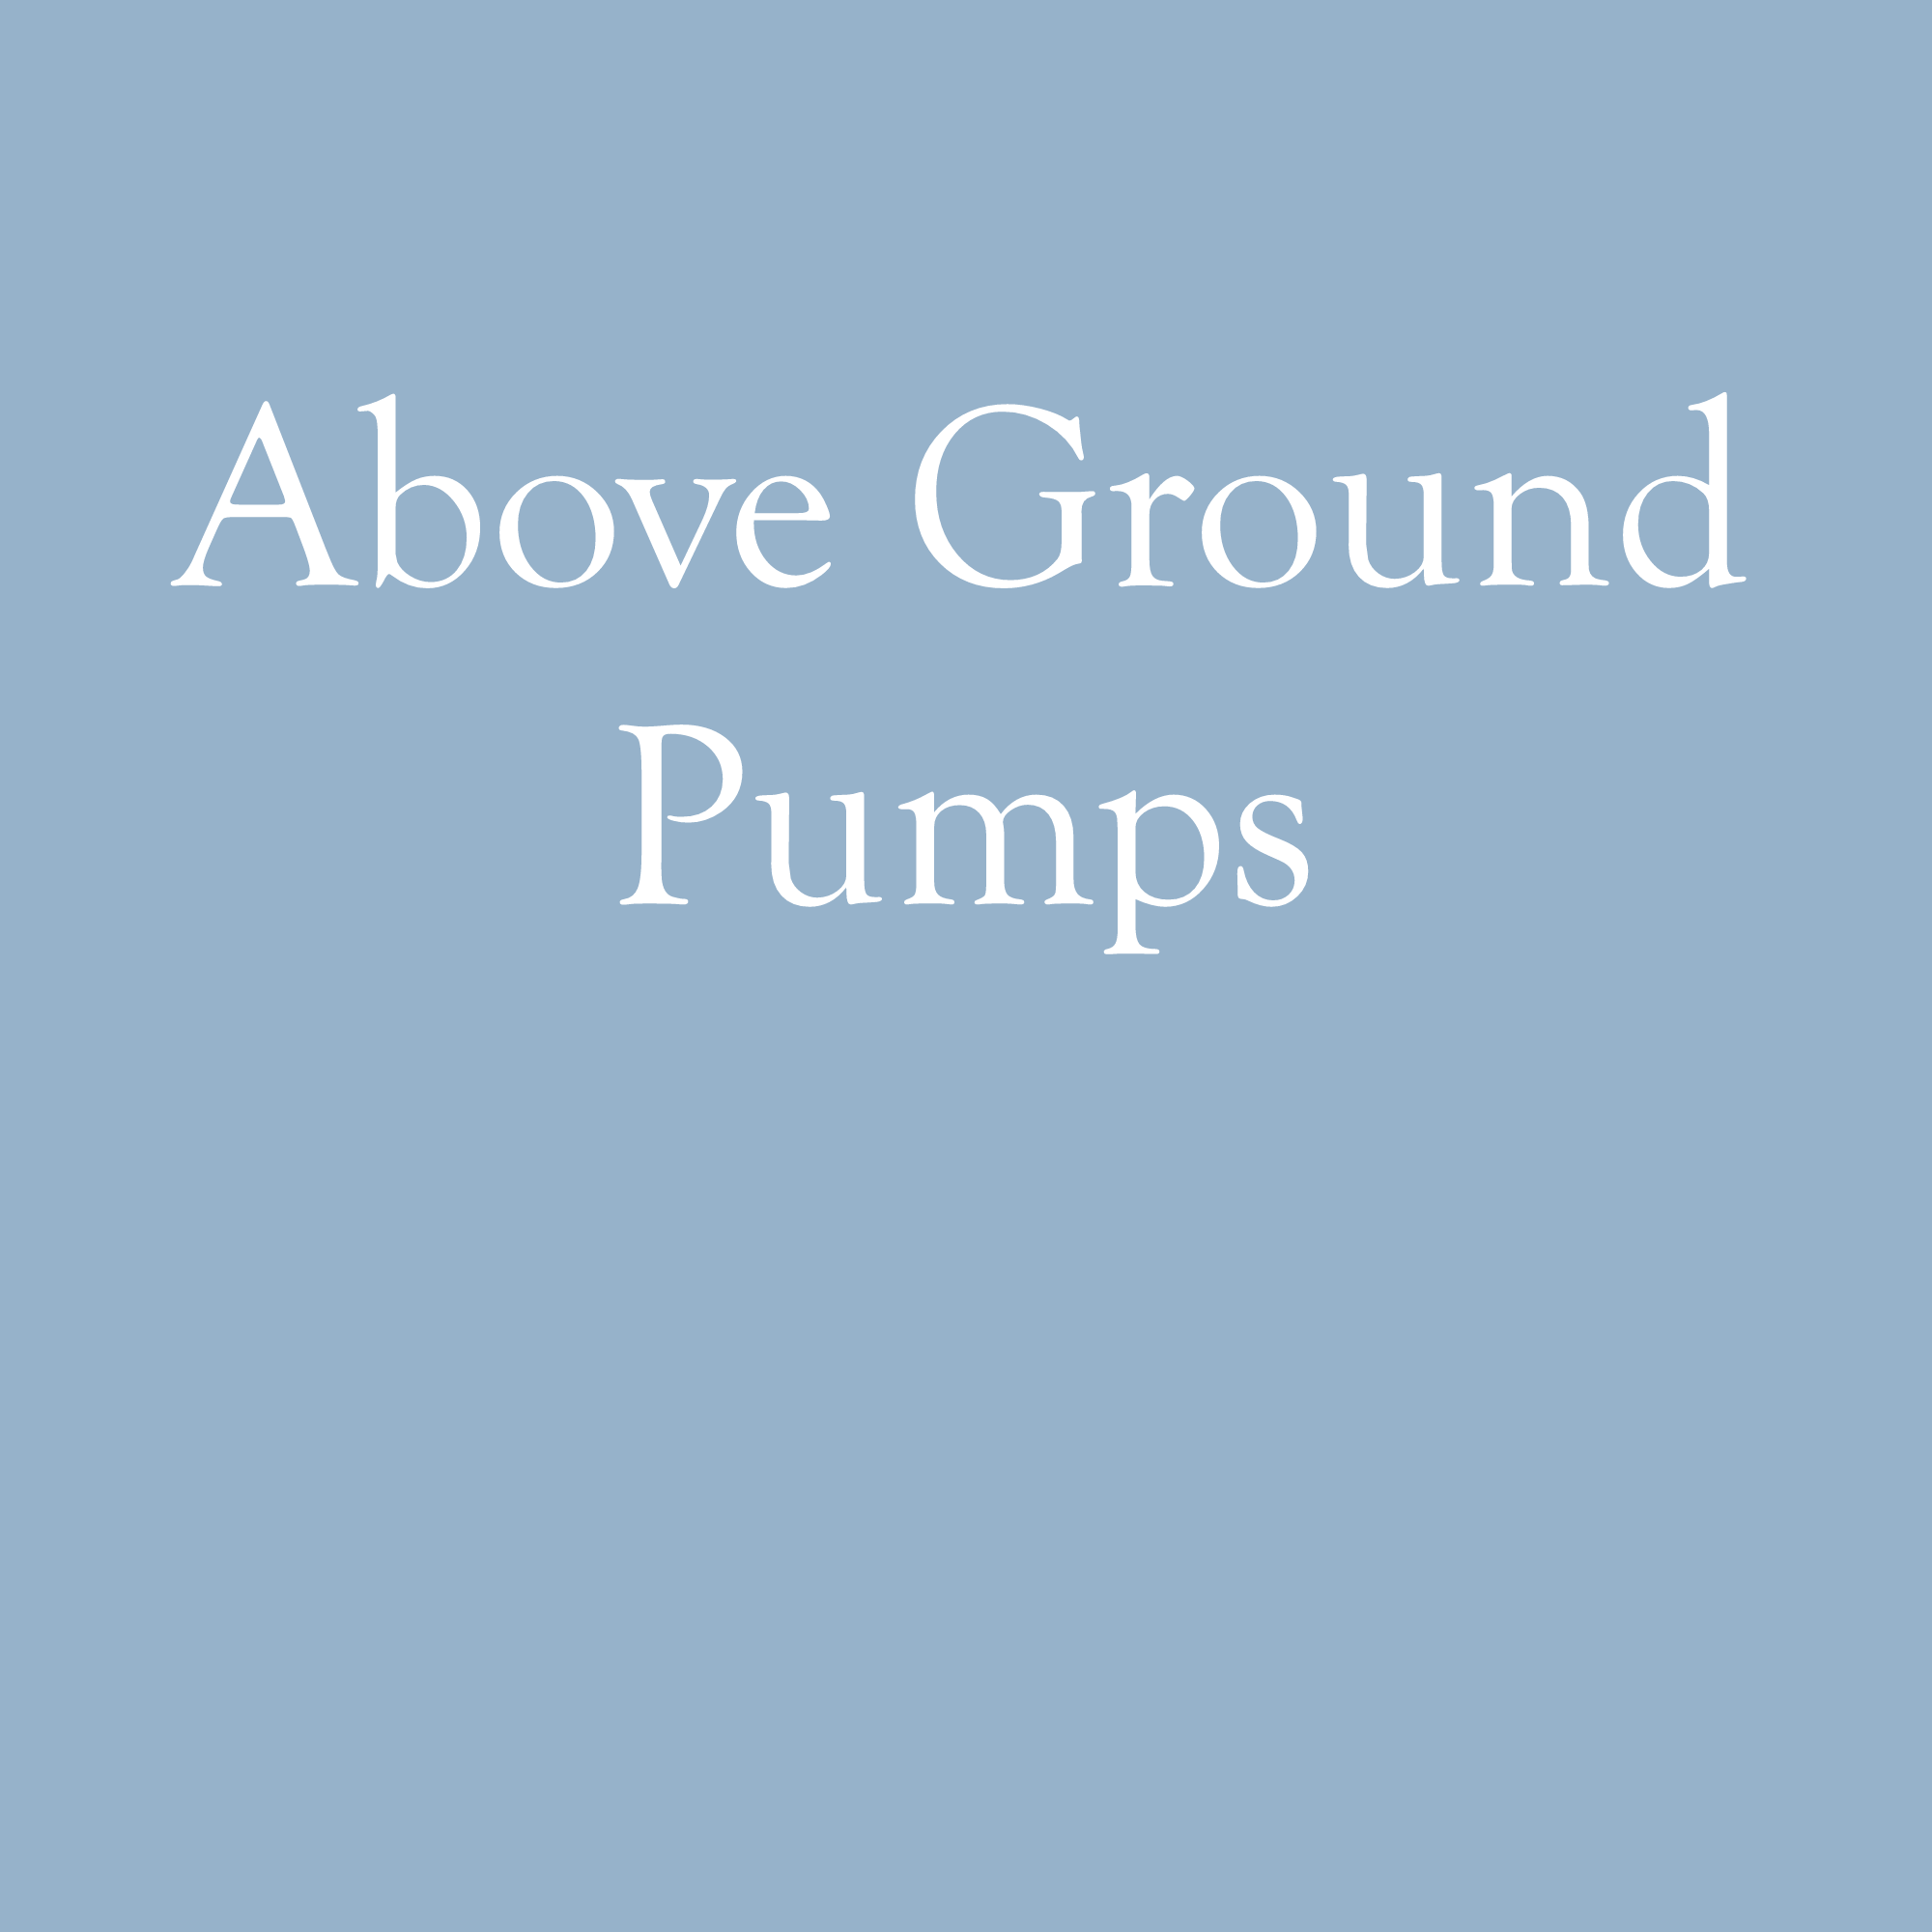 Above Ground Pumps